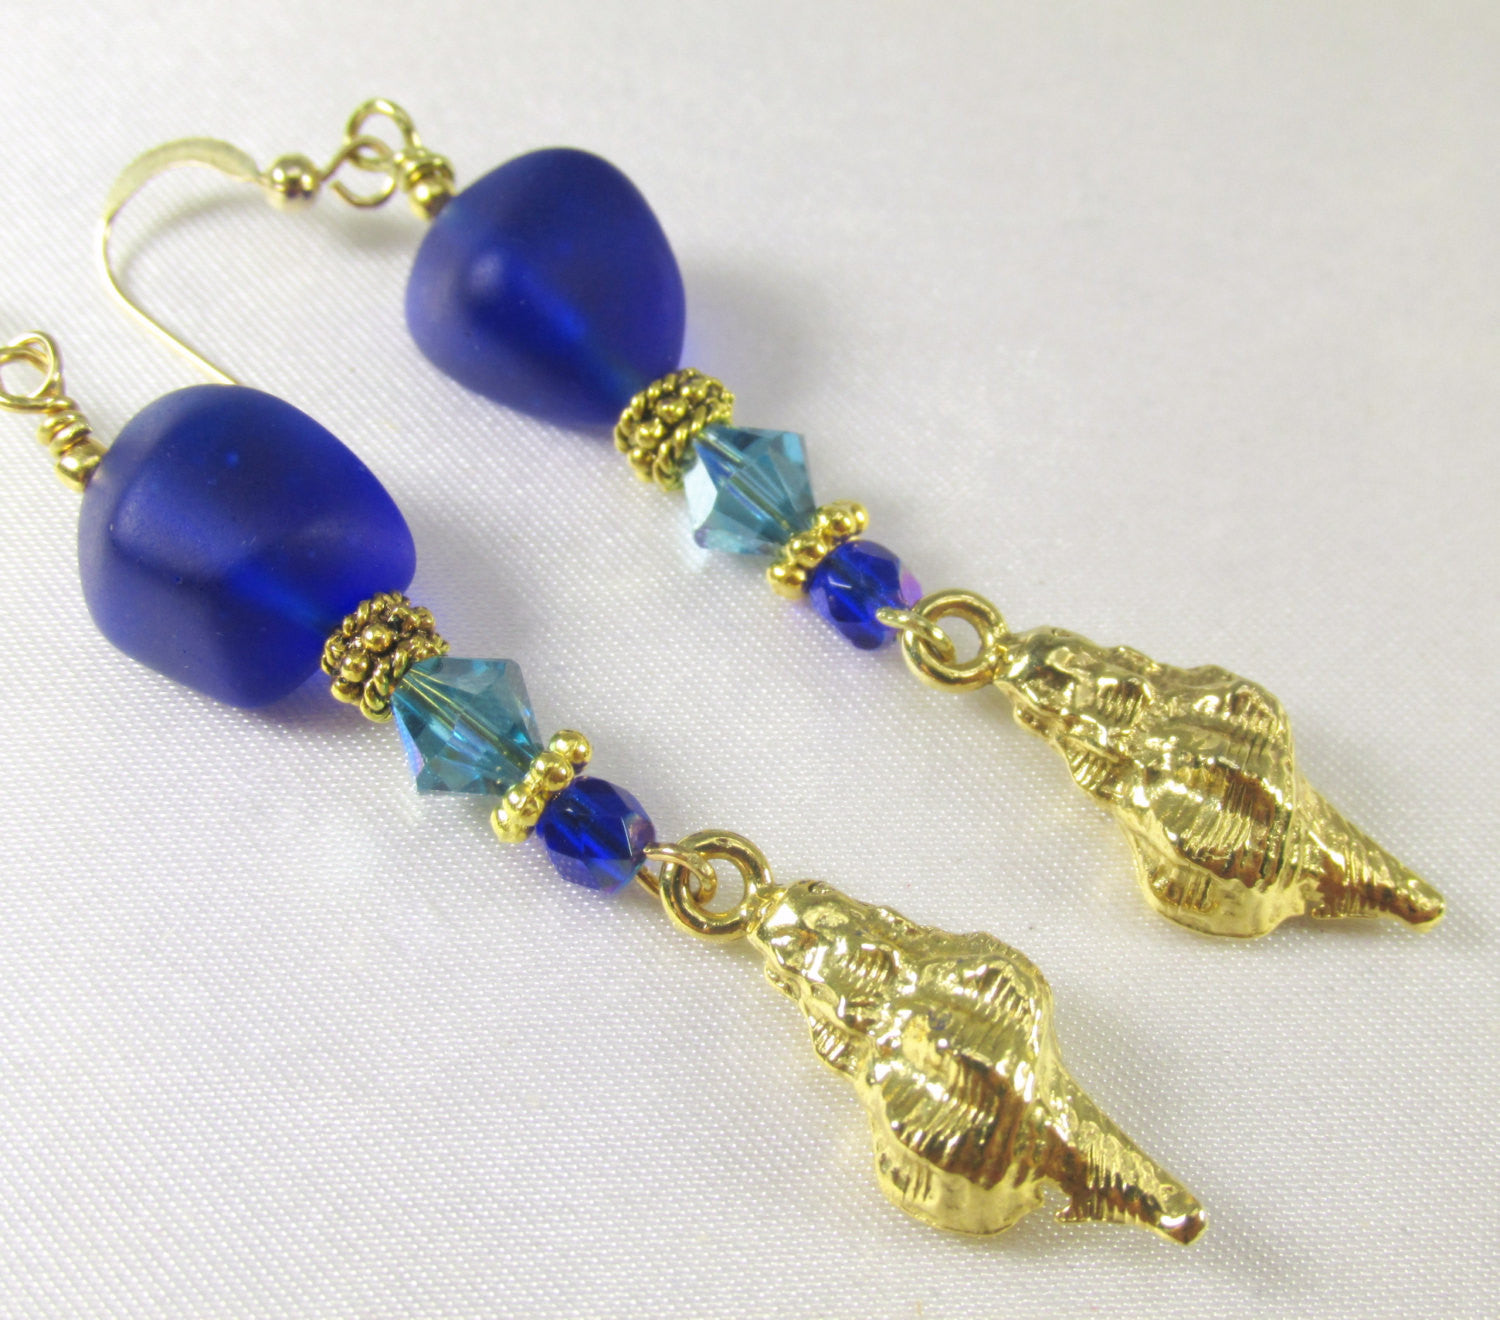 Long Beach Earrings with Royal Cobalt Blue Sea Glass, Turquoise Swarovski crystals, and Gold Concho Shell charms - Odyssey Creations